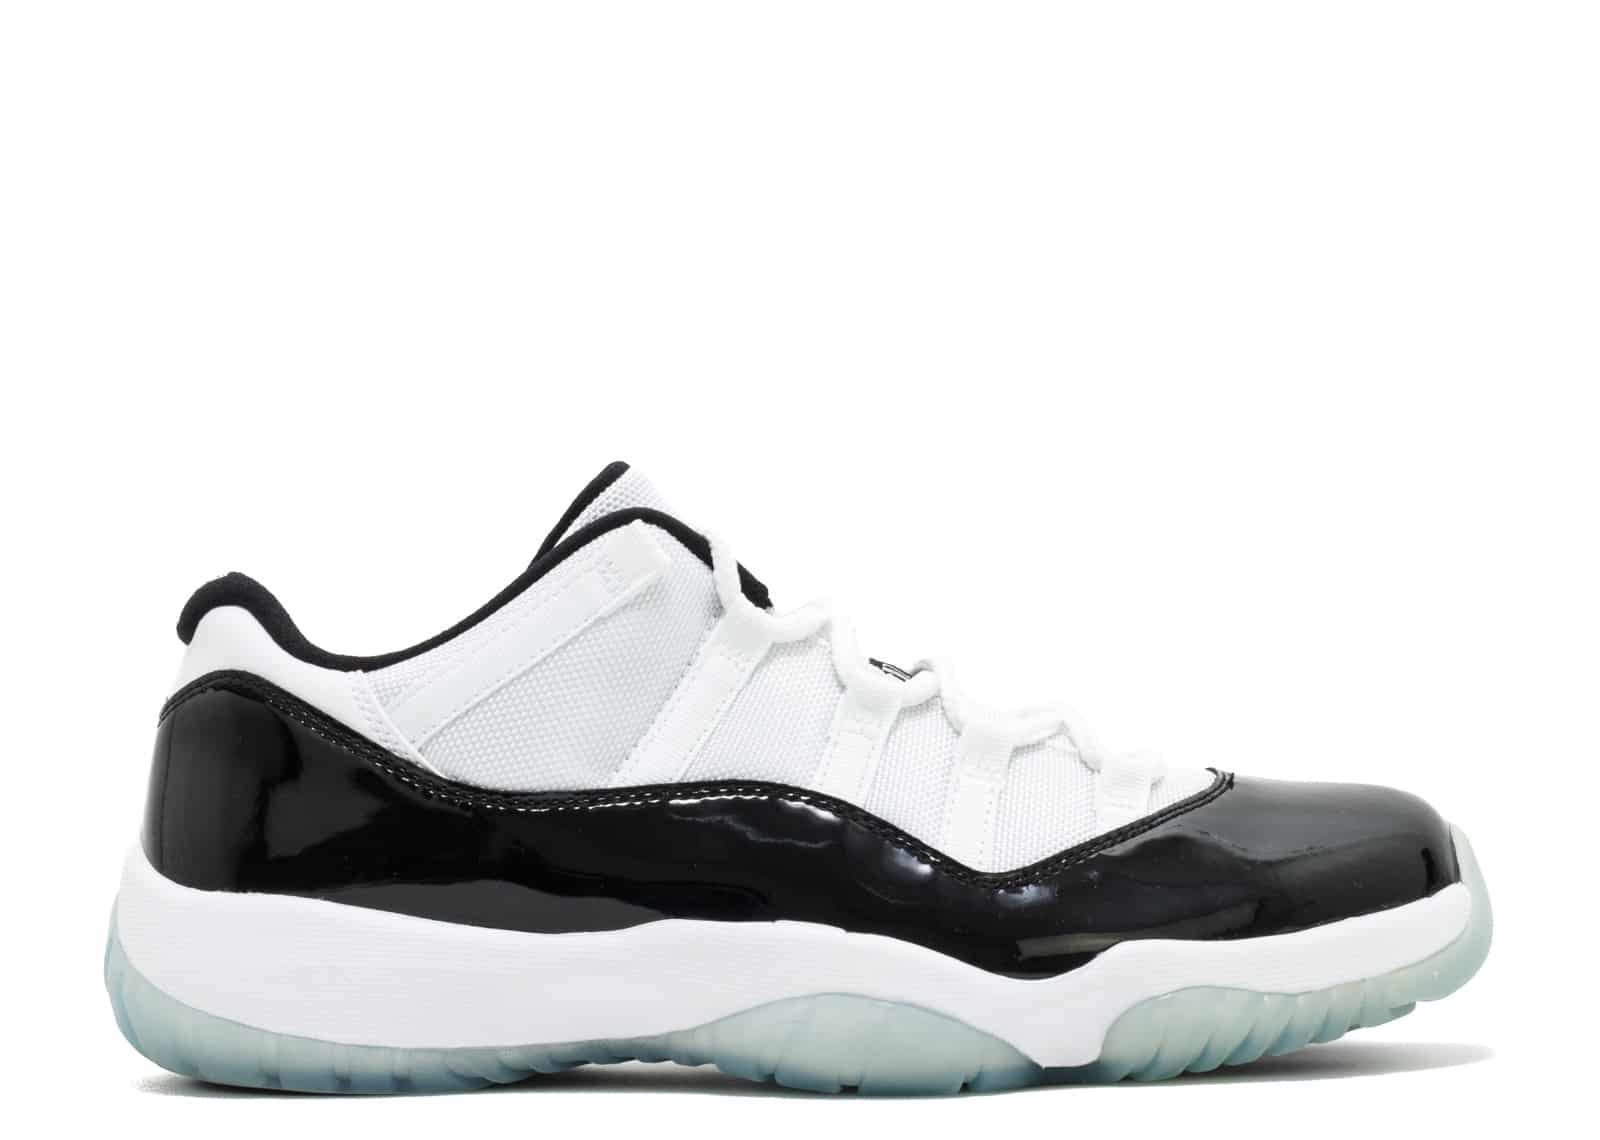 5c108e13ac2664 Air Jordan 11 Retro Concord (2018).   402.41 +. Add to Wishlist loading